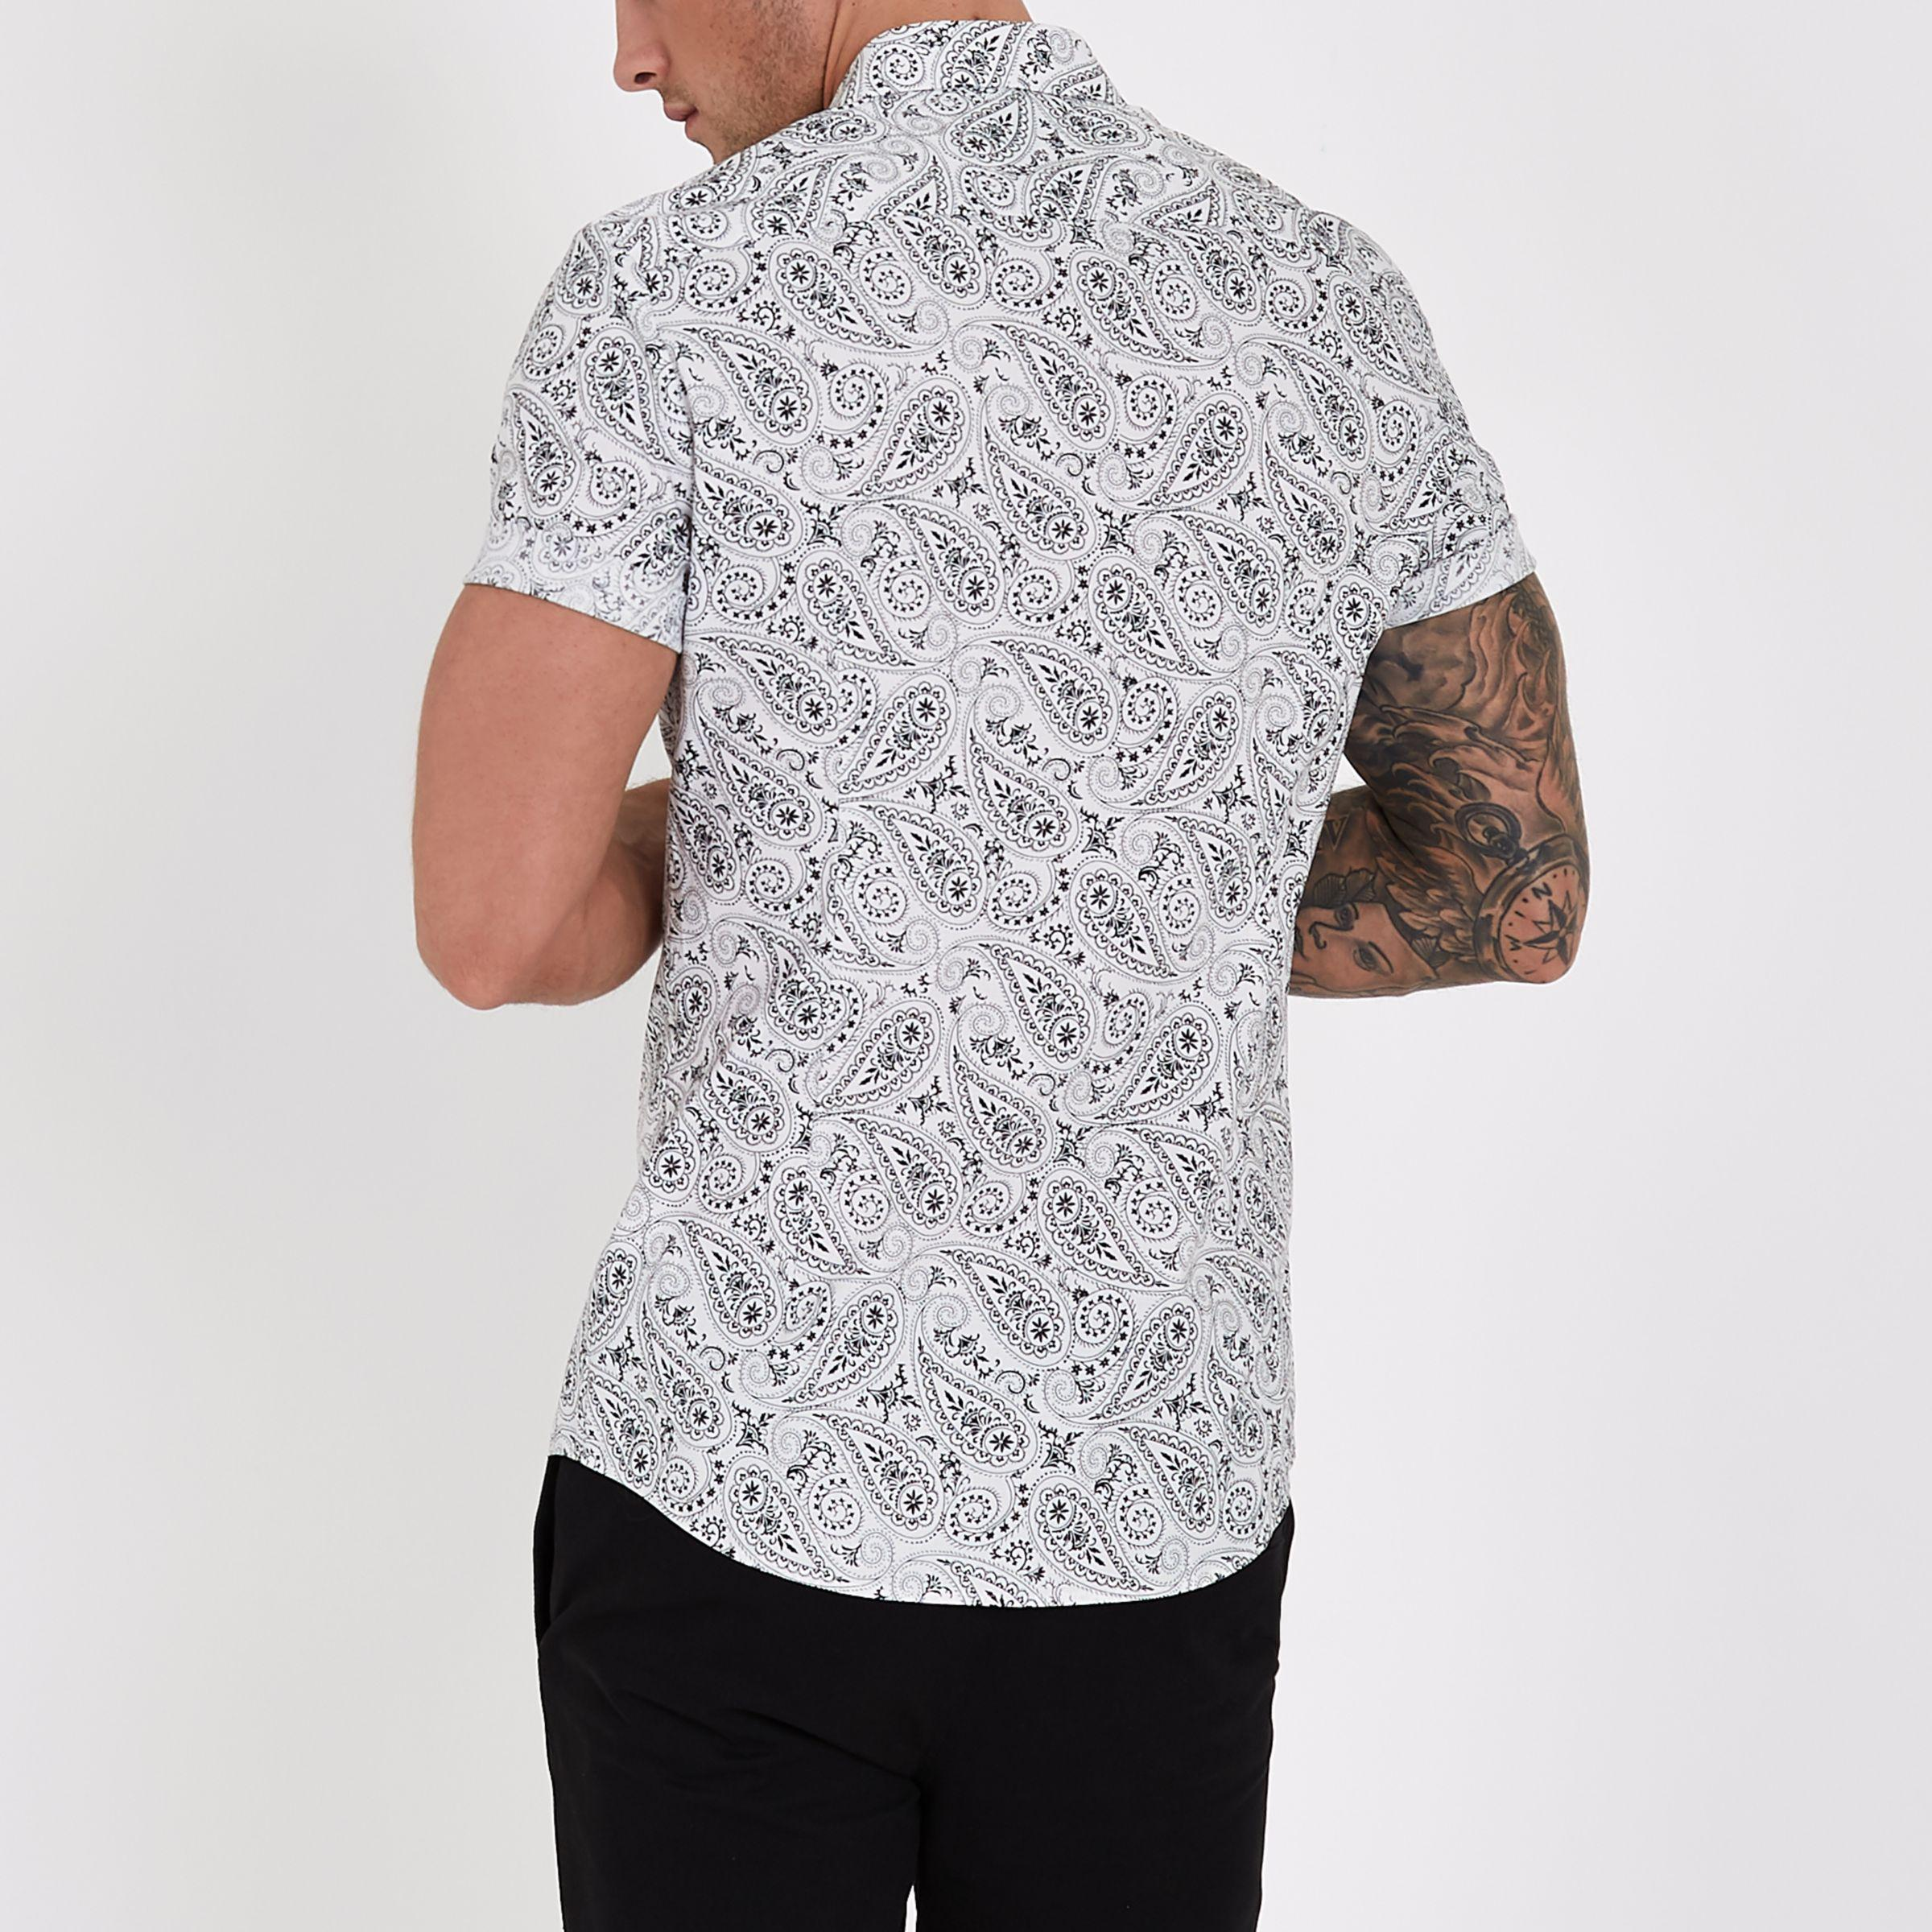 a96d13f8 Lyst - River Island White Muscle Fit Short Sleeve Paisley Shirt in ...